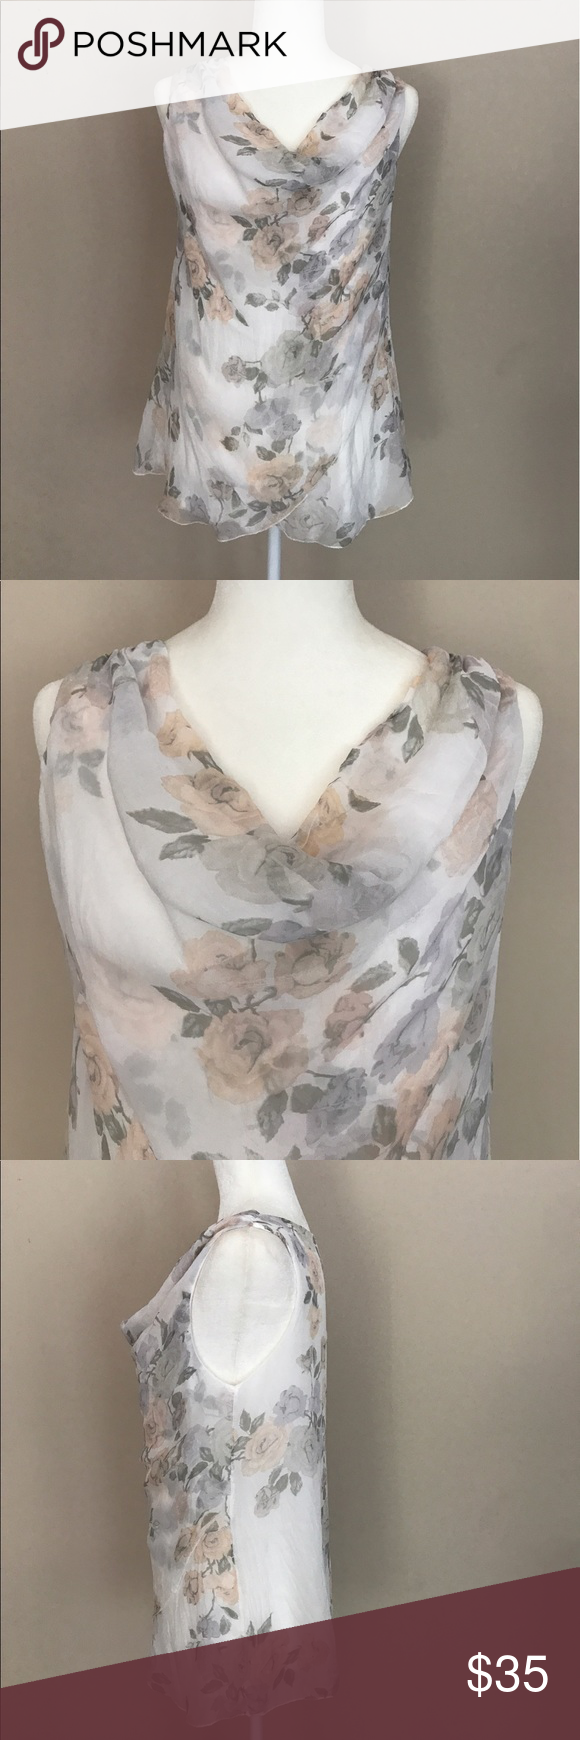 df8d43548da8af GIUSY Pure Silk Cowl Neck Flower Blouse Made in Italy - I bought this at a